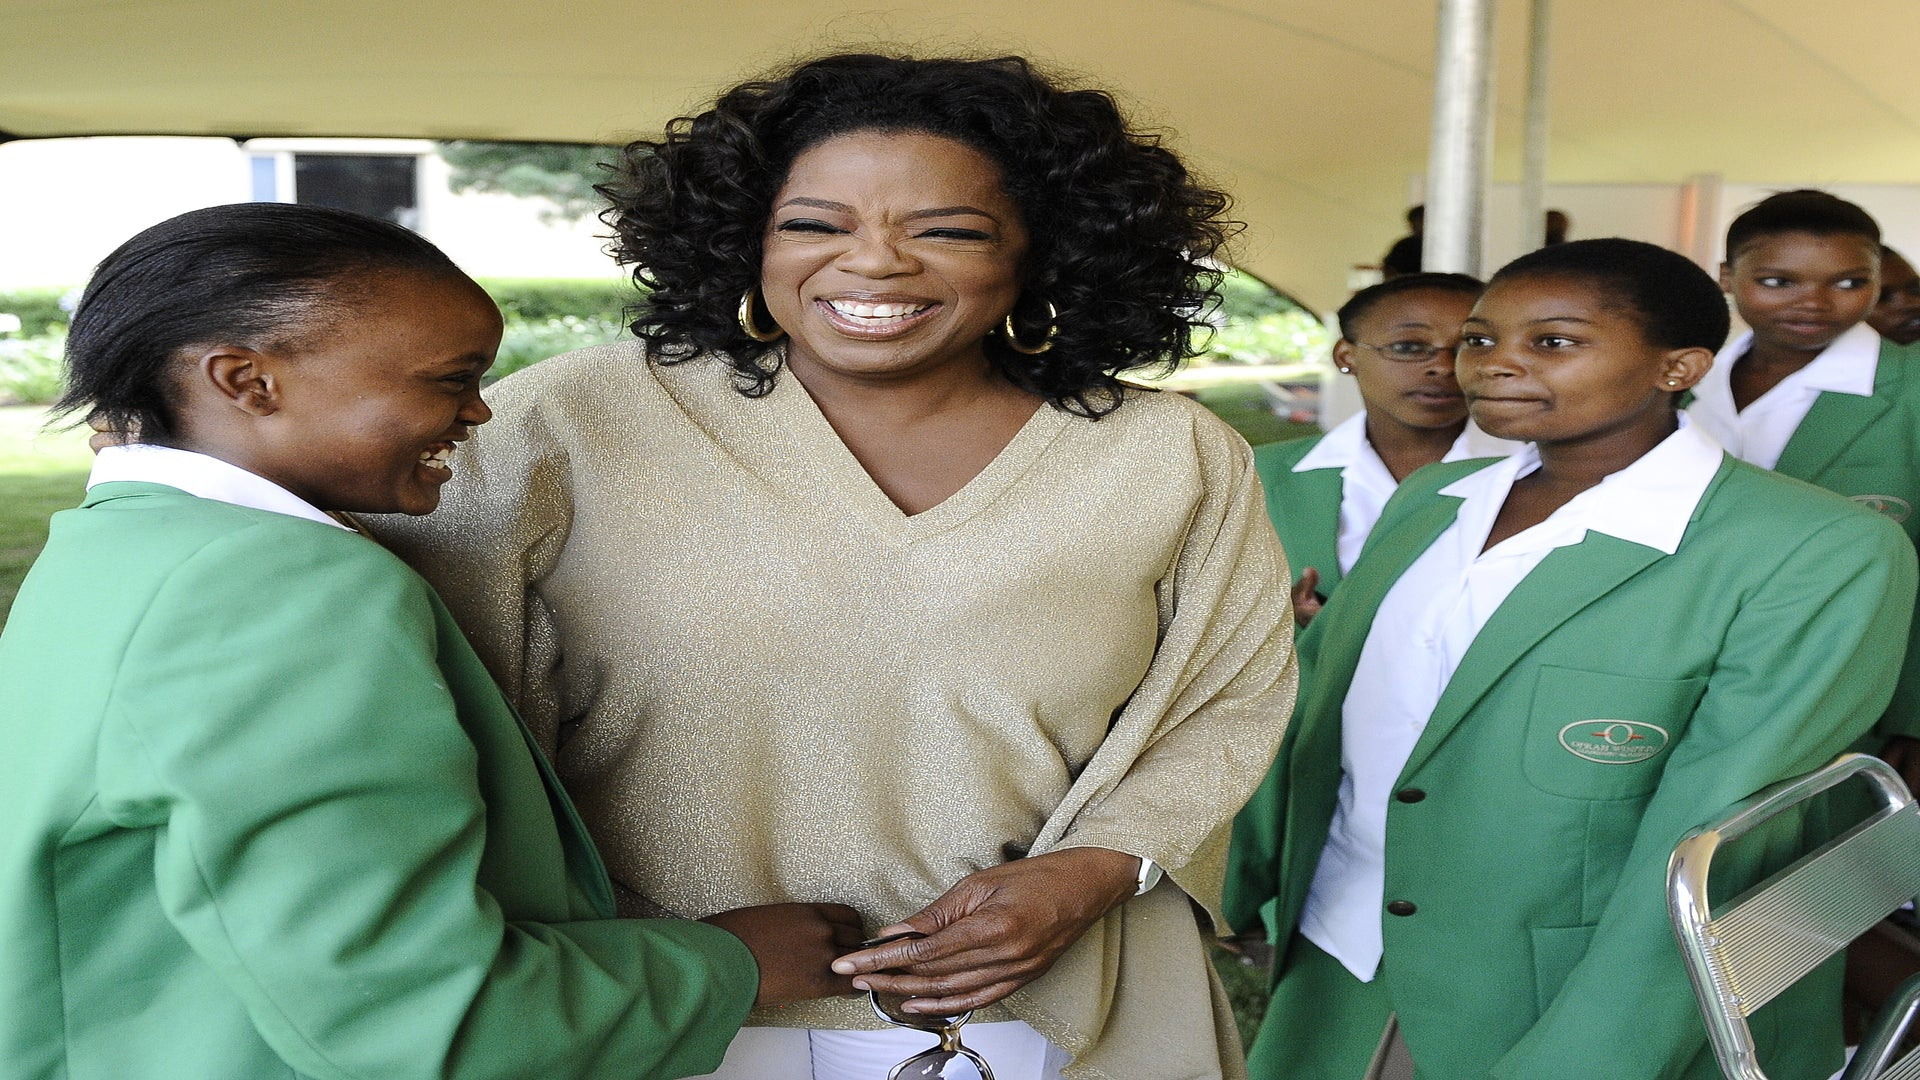 Oprah Celebrates South African School's First Graduation